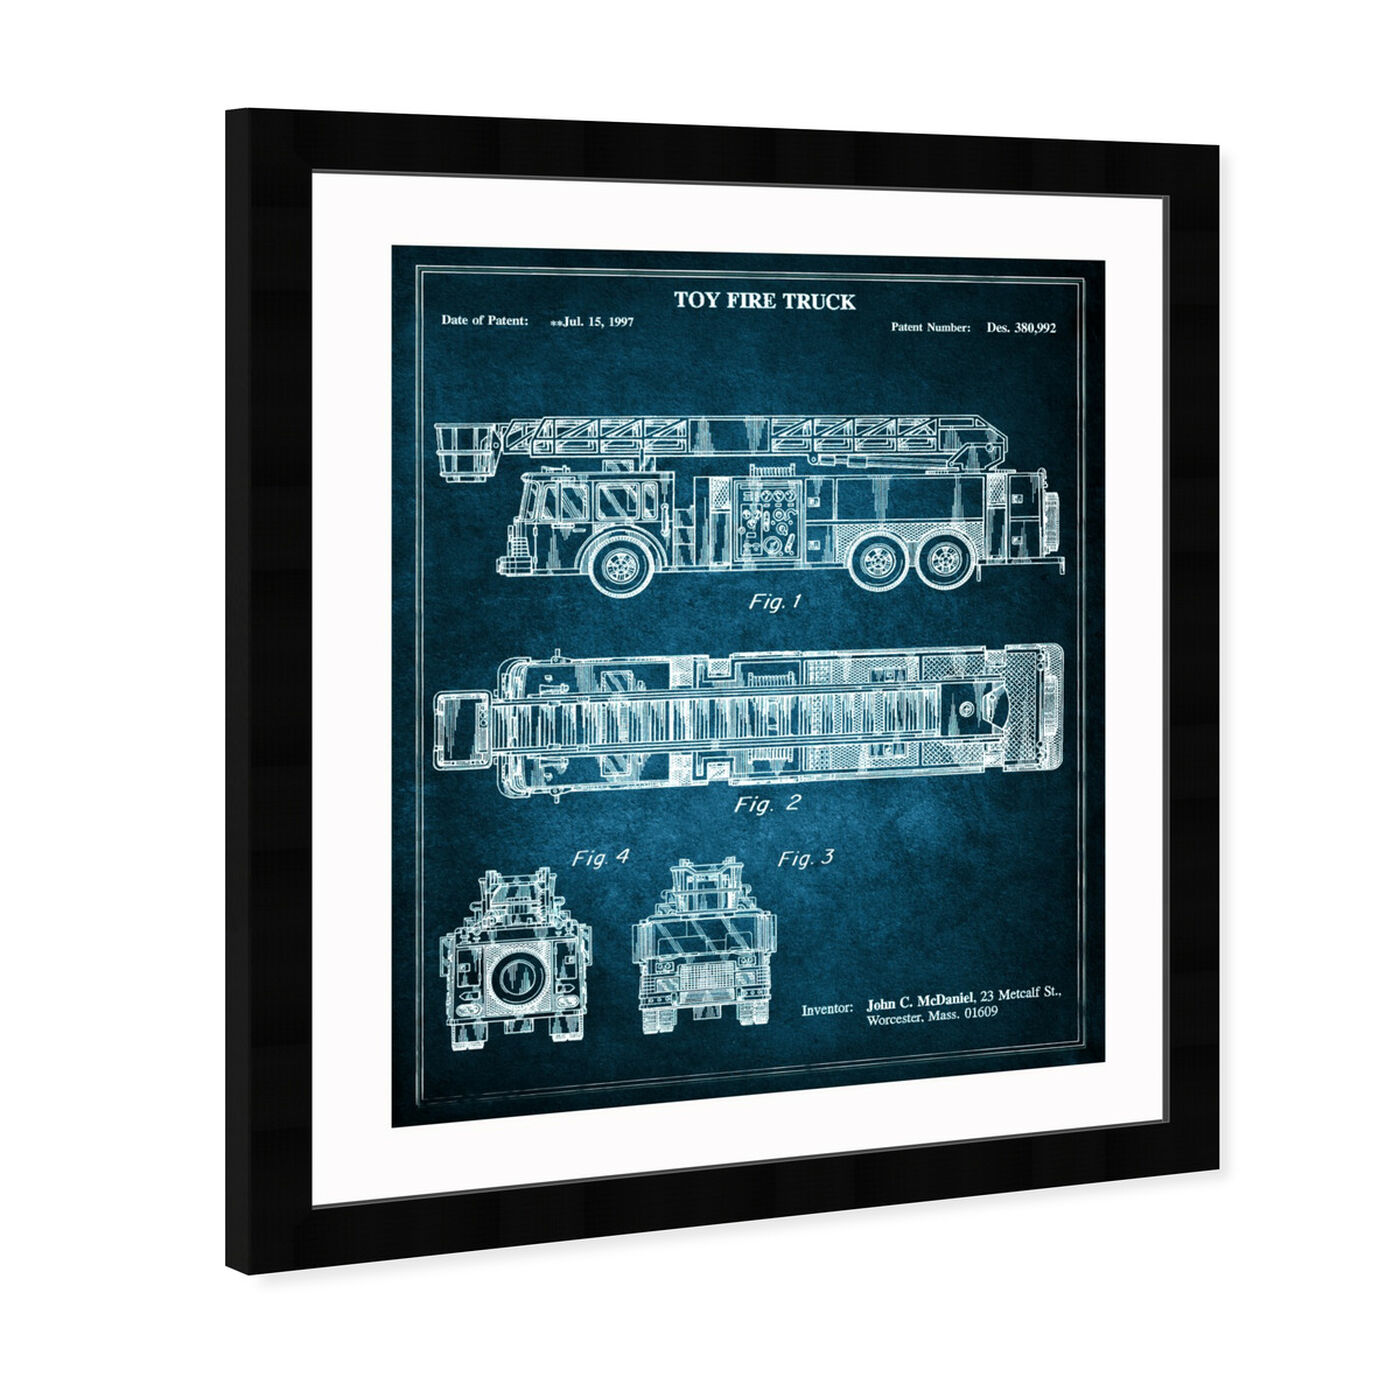 Angled view of Toy Fire Truck 1997 - Blue featuring entertainment and hobbies and toys art.